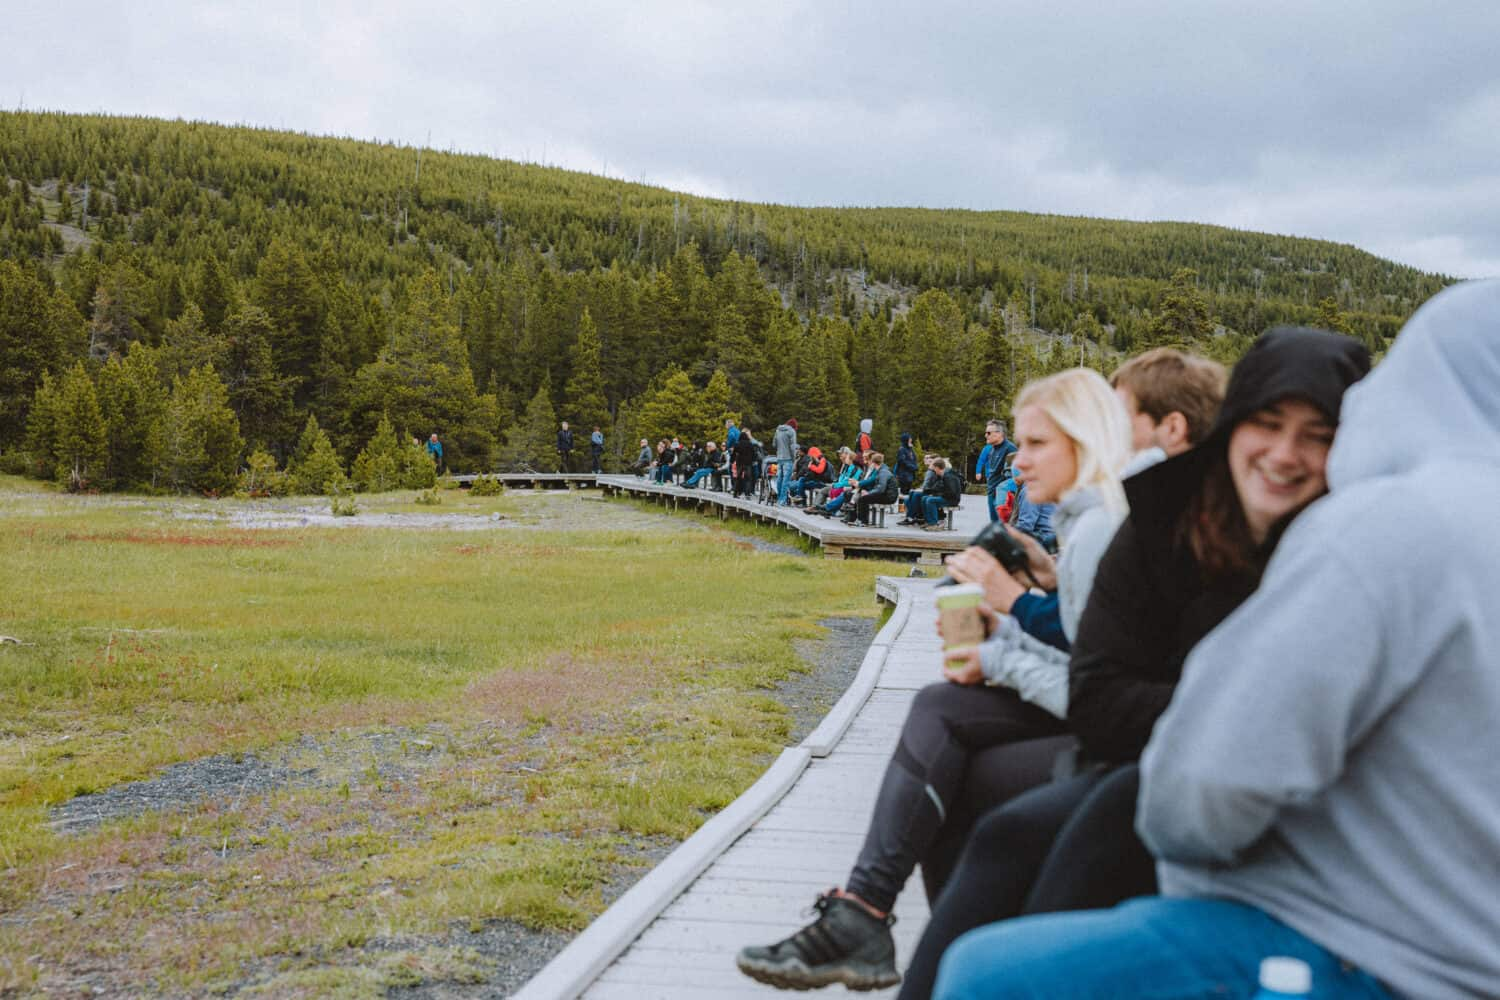 People waiting to watch Old Faithful erupt